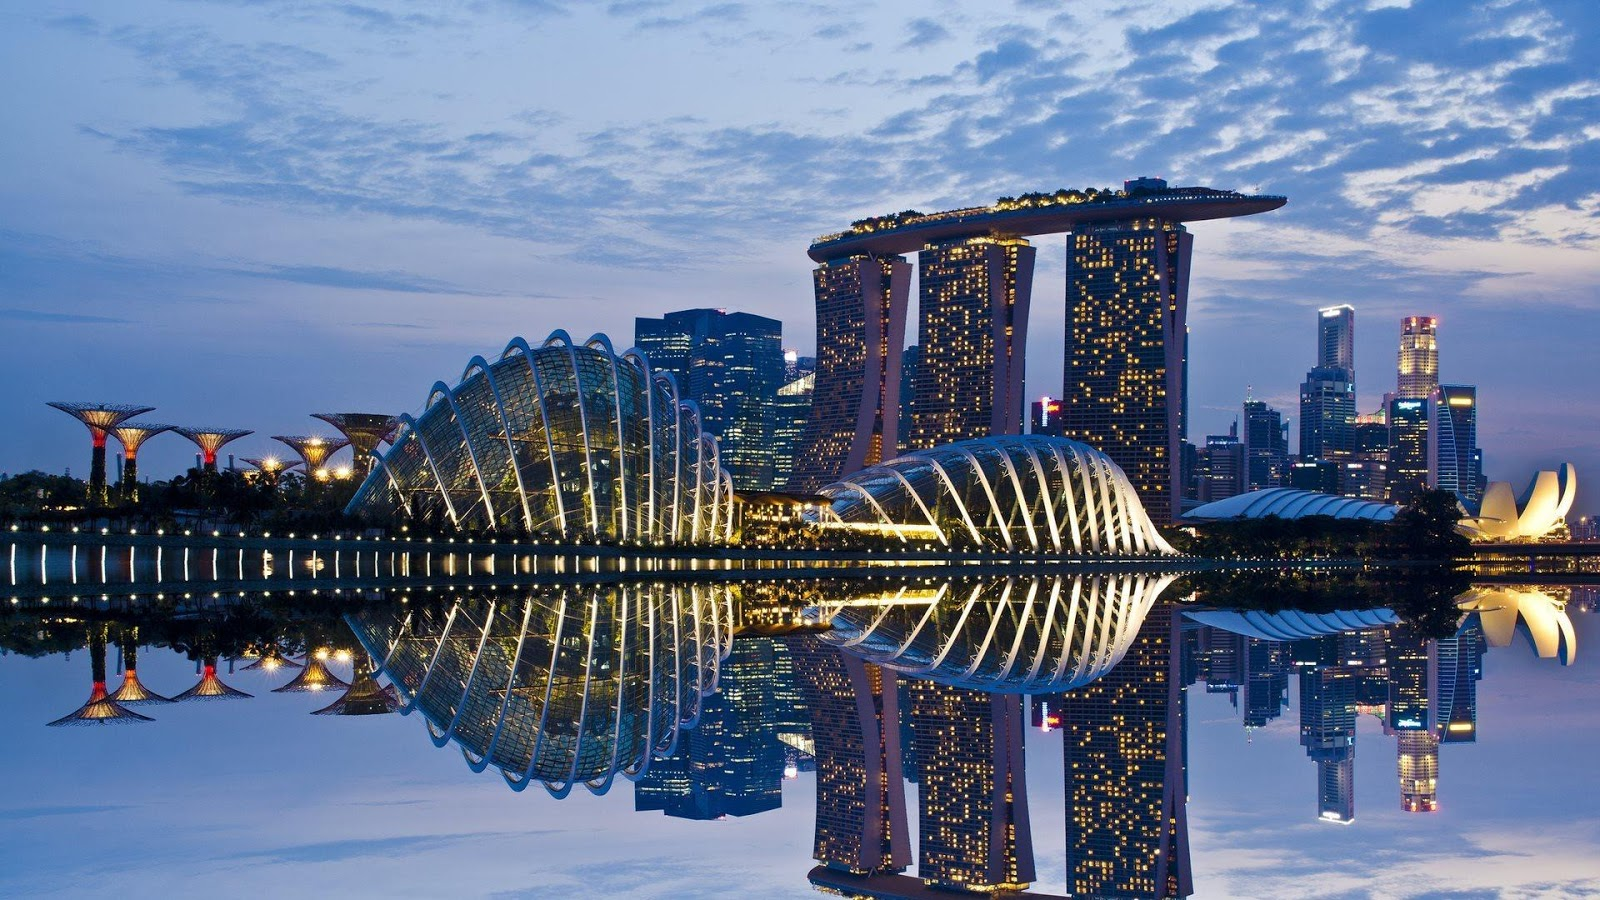 Love Travel Jan 2018s Singapore Entrance Tickets Promotion Luge Ampamp Skyline 2x Best Price Offered